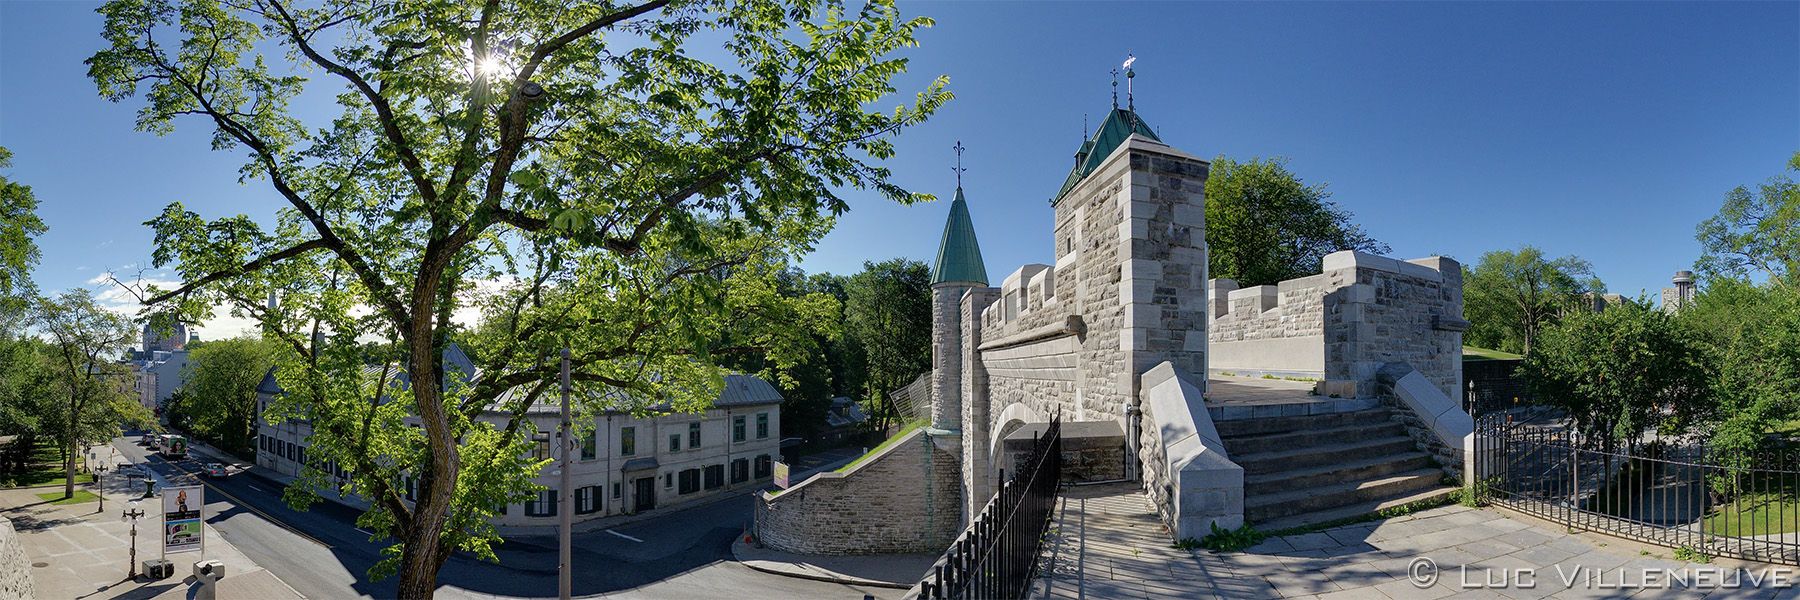 Fortifications of qu bec qu for Porte st louis quebec